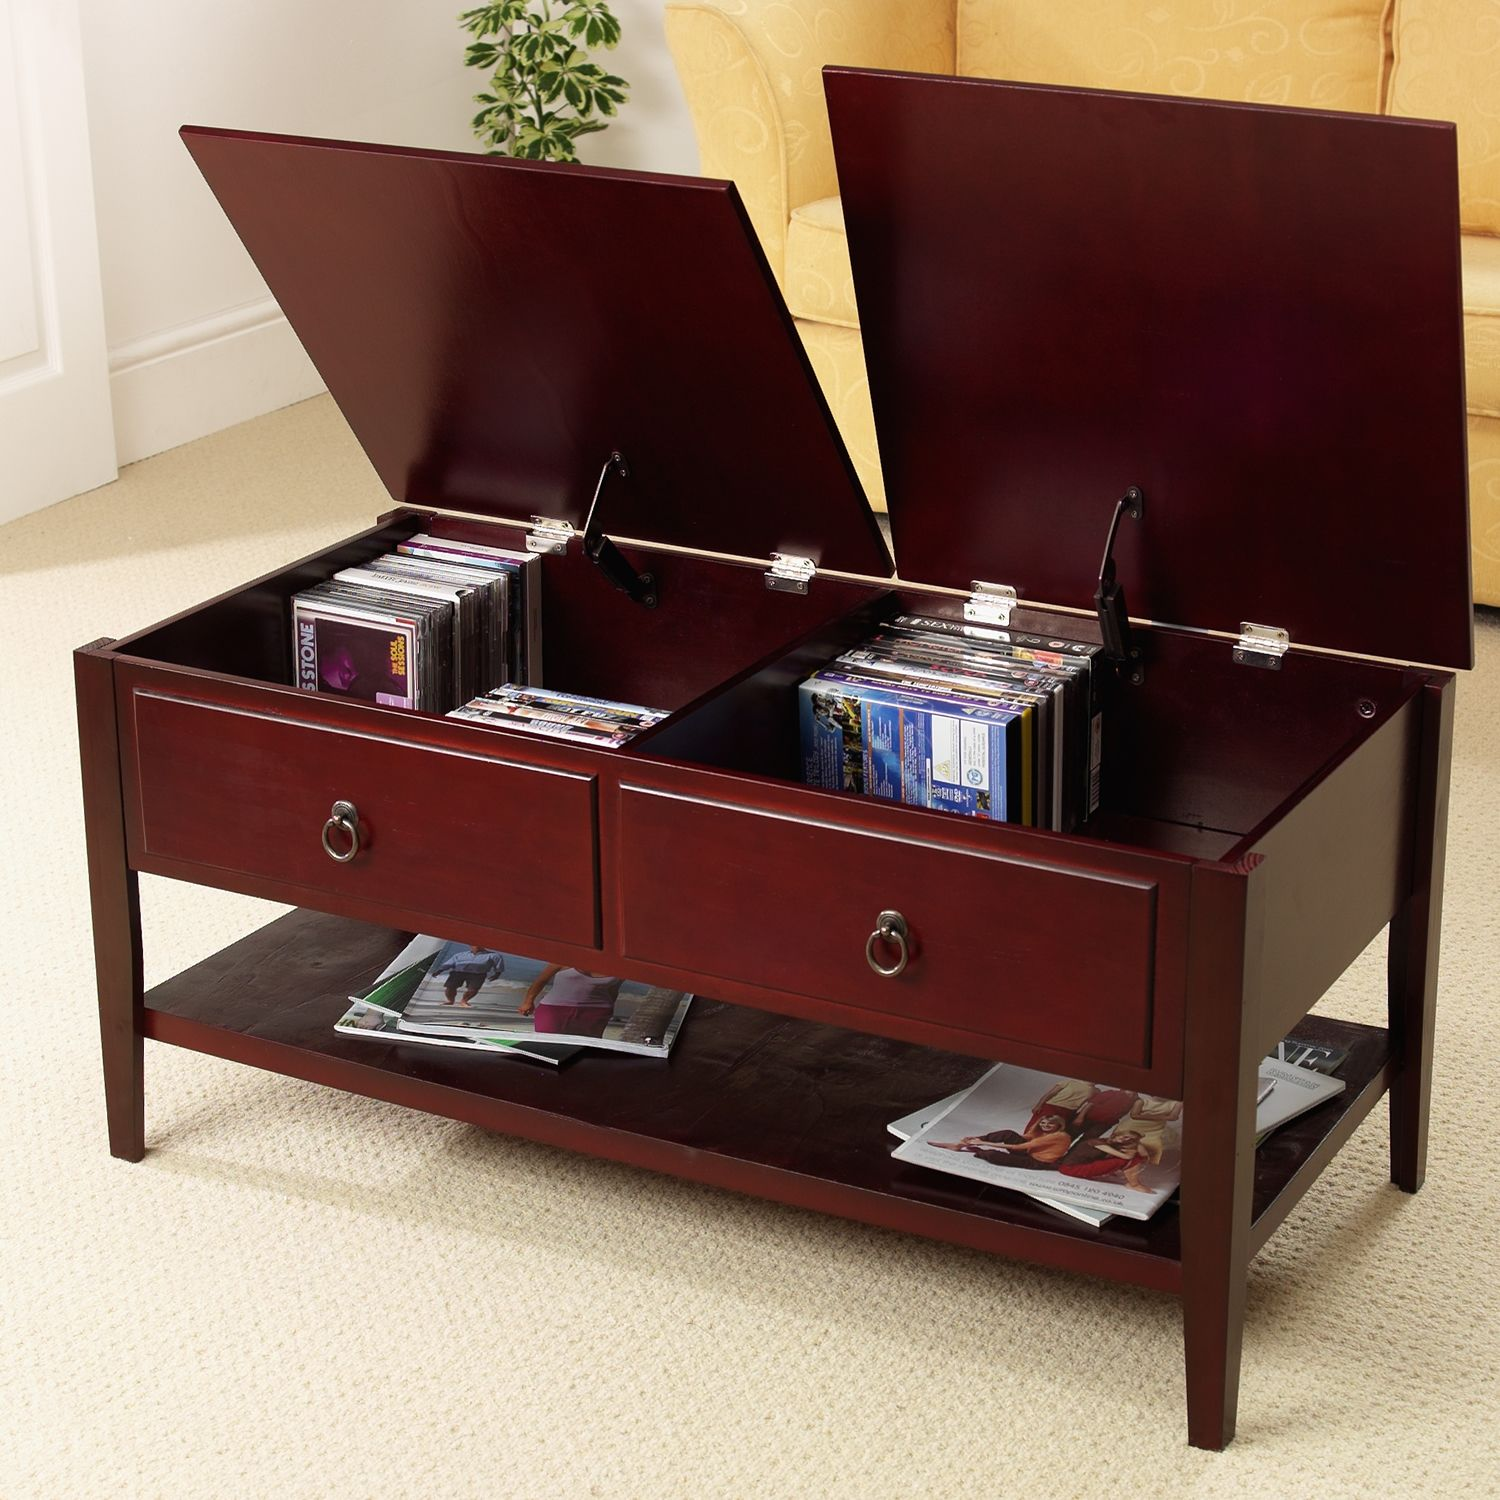 Cherry Wood Coffee Table With Storage & Cherry Wood Coffee Table With Storage | http://therapybychance.com ...